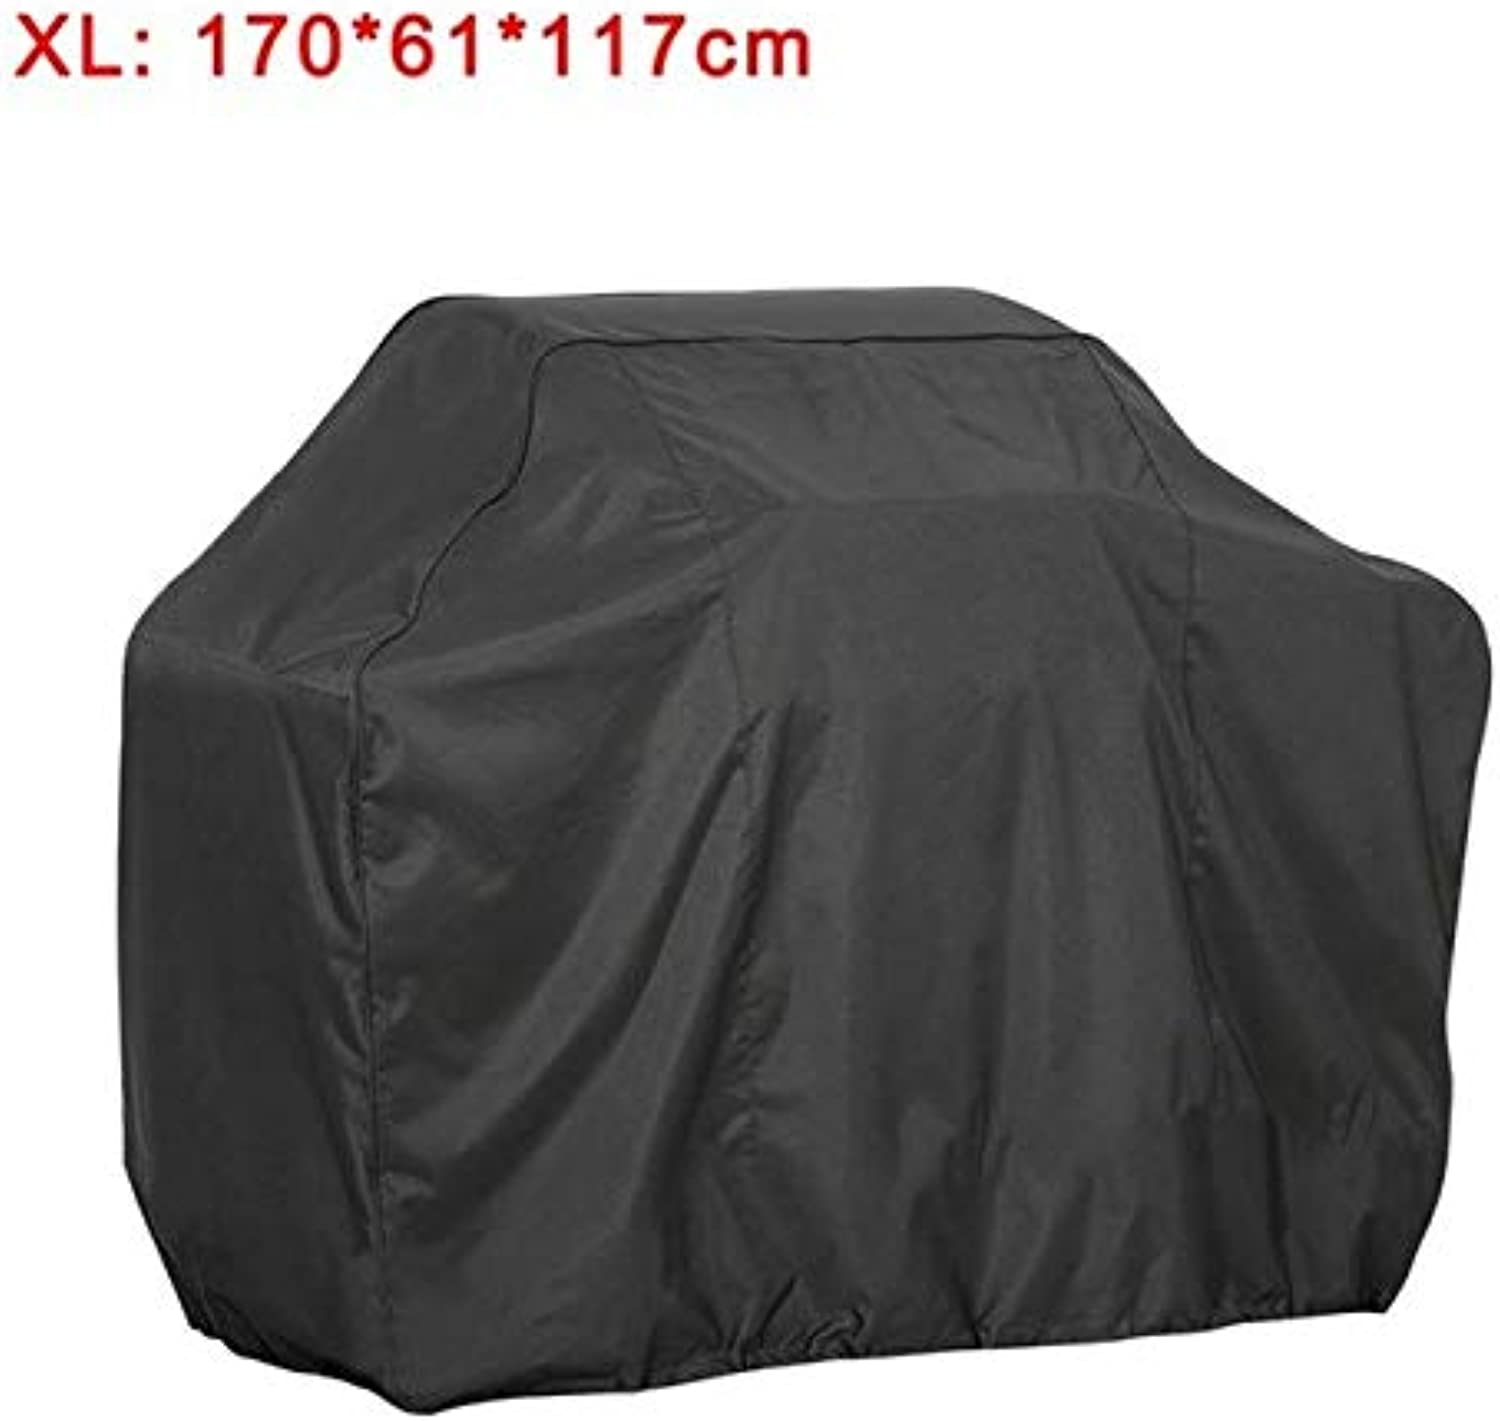 For Home Dust Cover Rain Proof Durable Waterproof Black BBQ